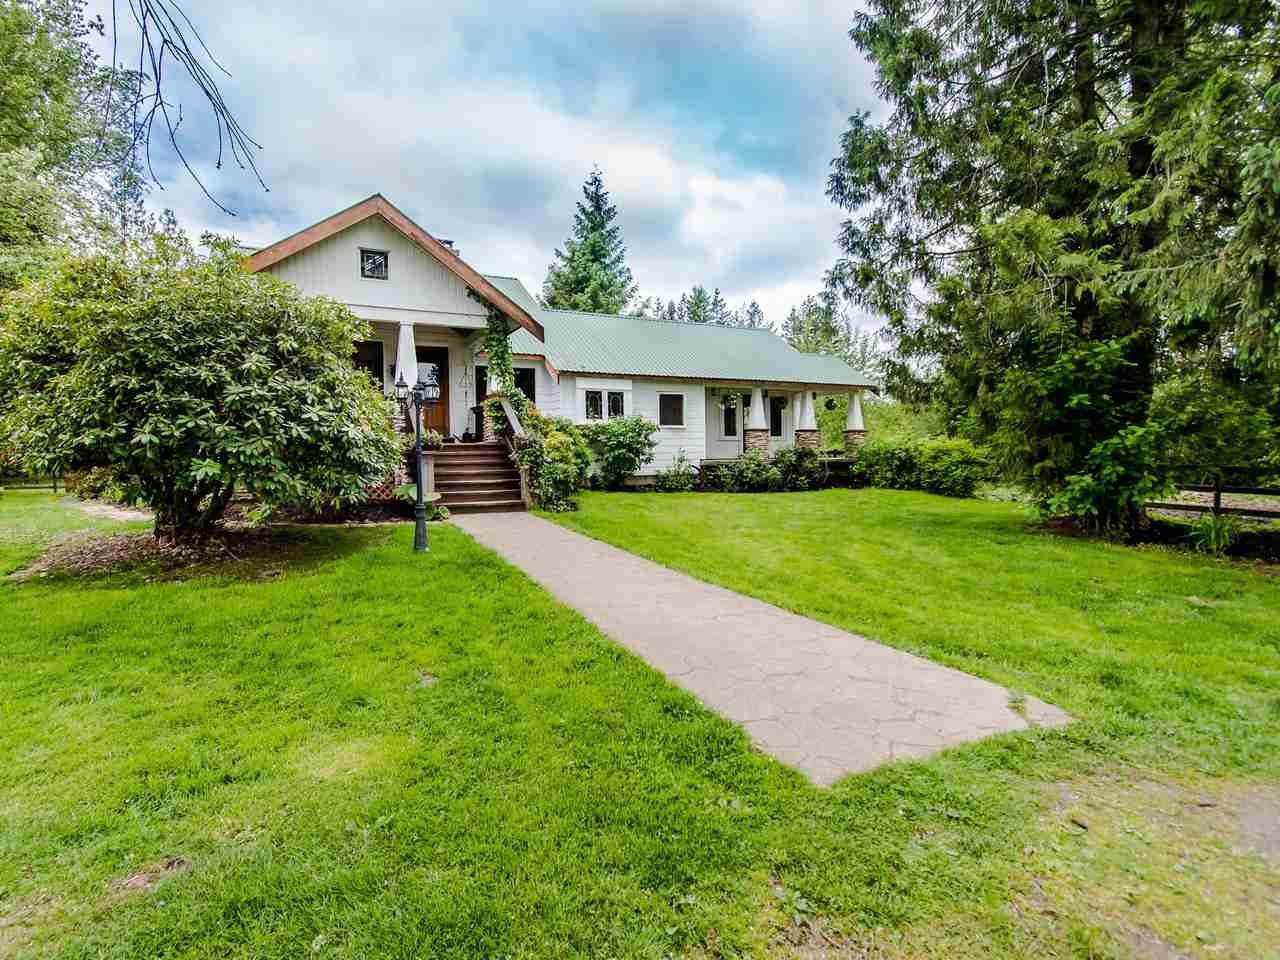 """Main Photo: 3555 264 Street in Langley: Otter District House for sale in """"ALDERGROVE"""" : MLS®# R2457531"""